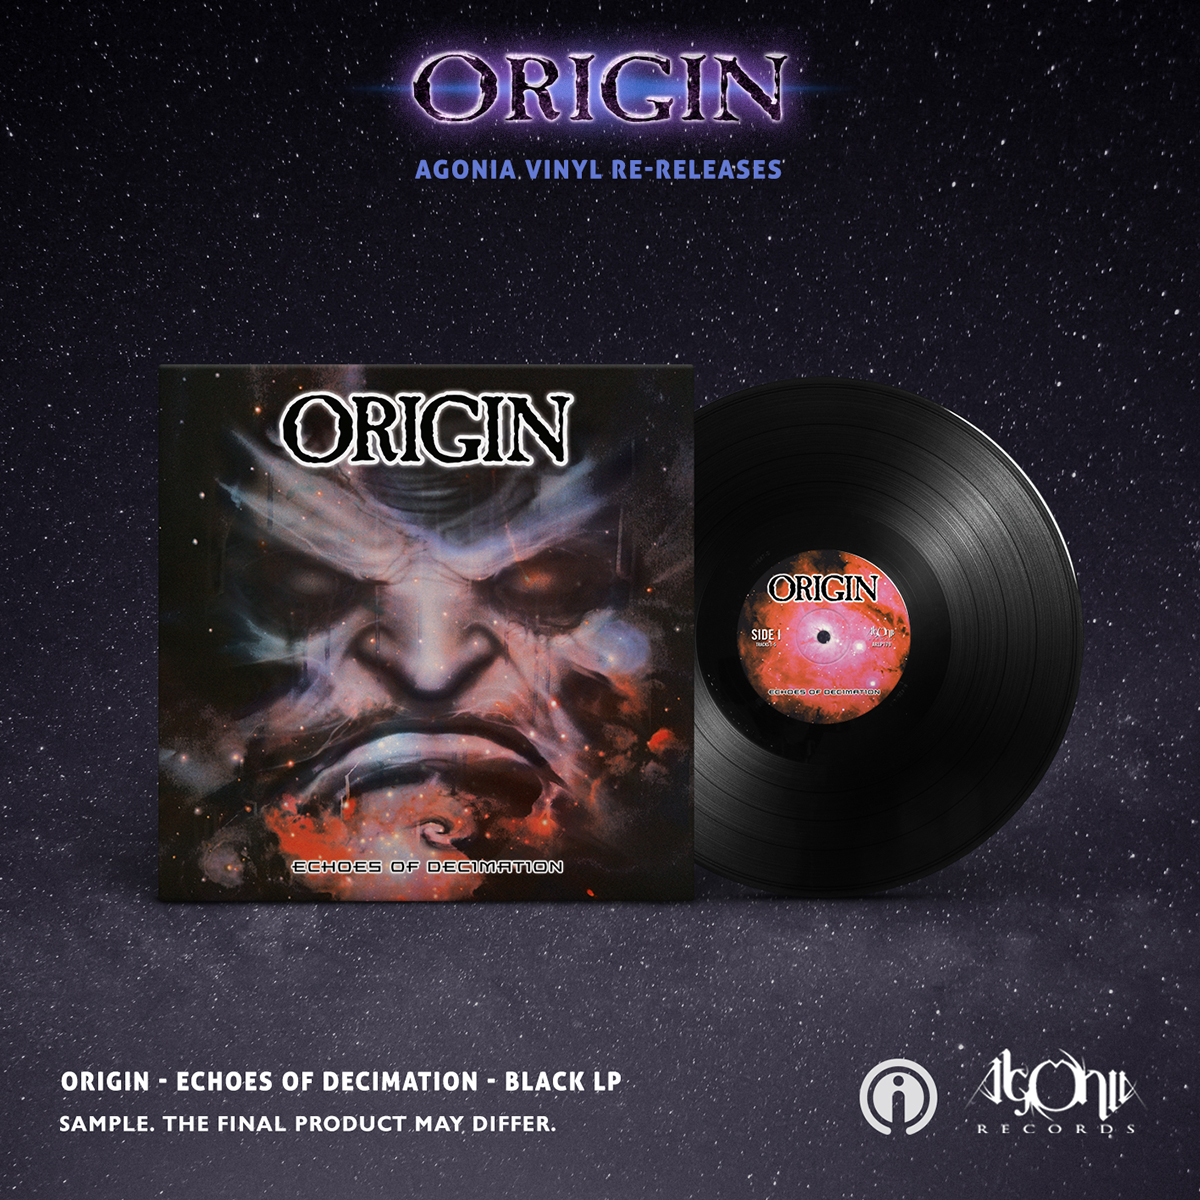 Origin - Echoes of Decimation